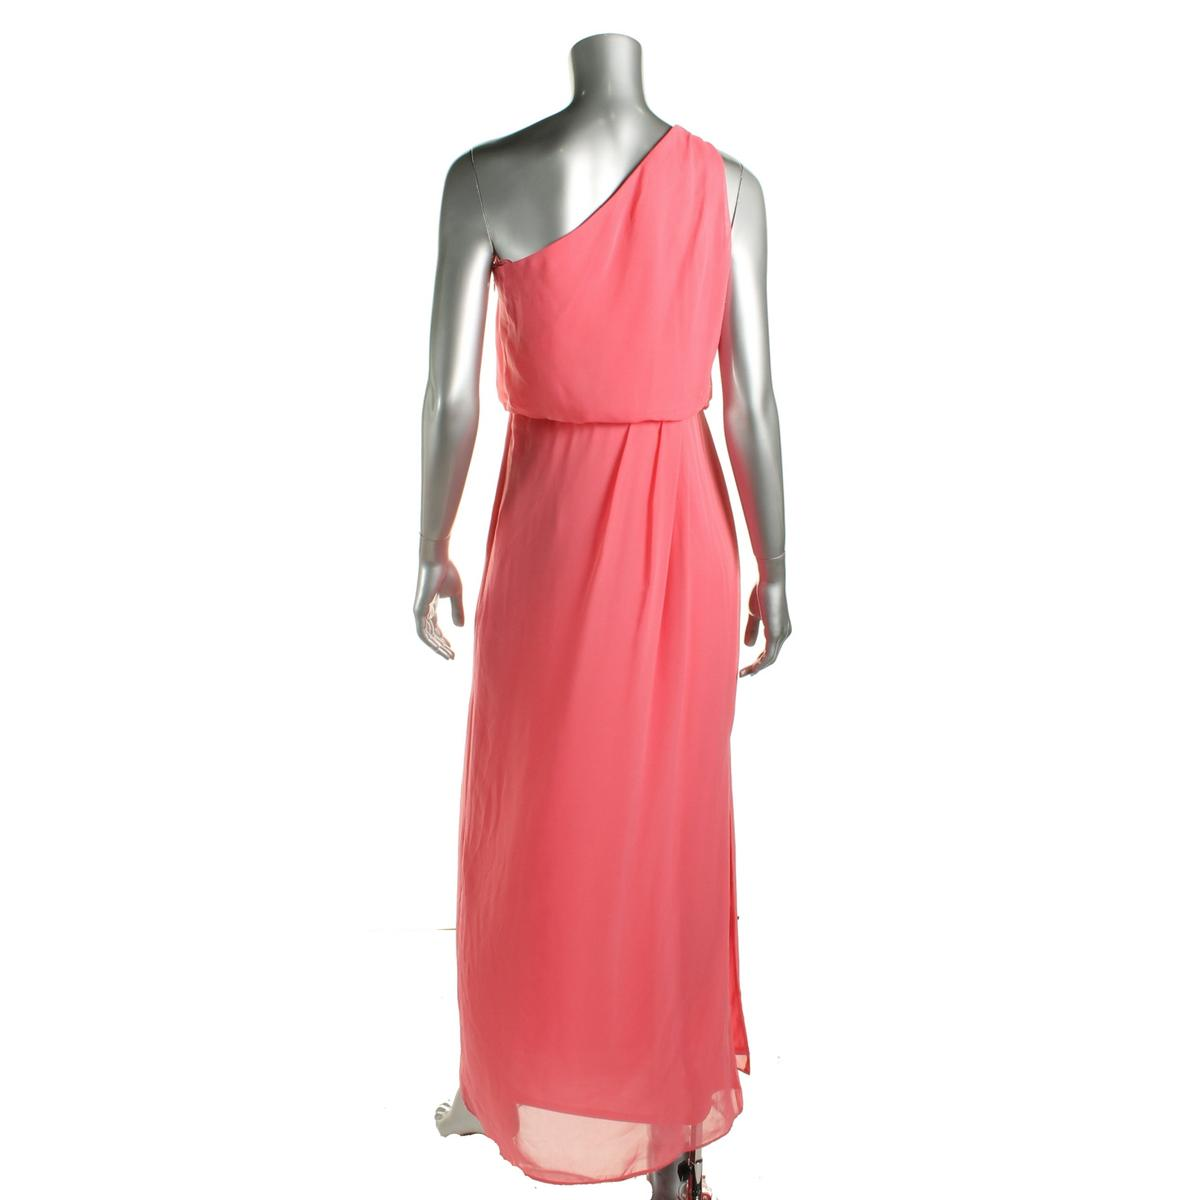 Adrianna Papell Womens Chiffon Embellished Evening Dress Gown BHFO ...